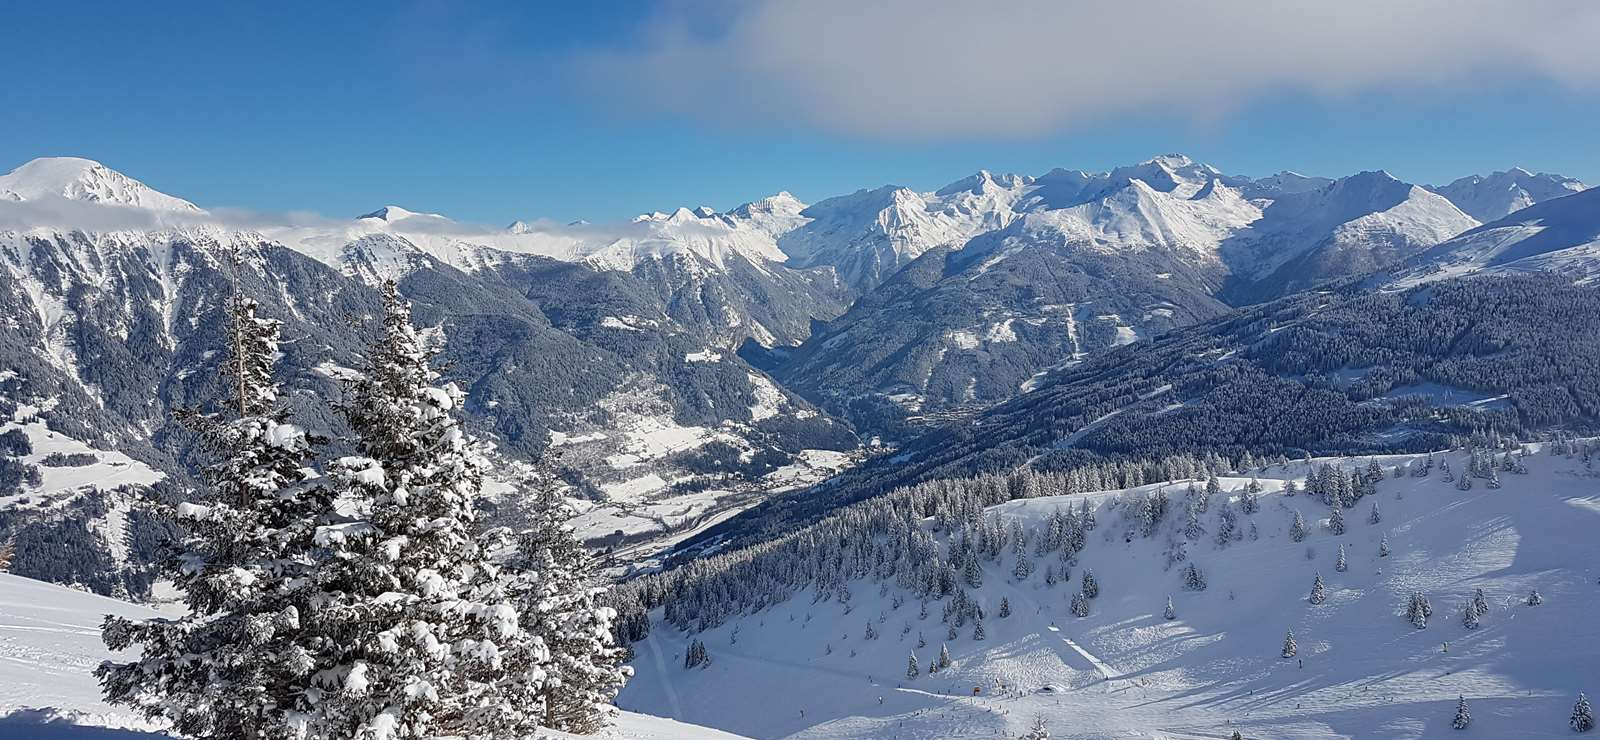 View of the Gastein valley